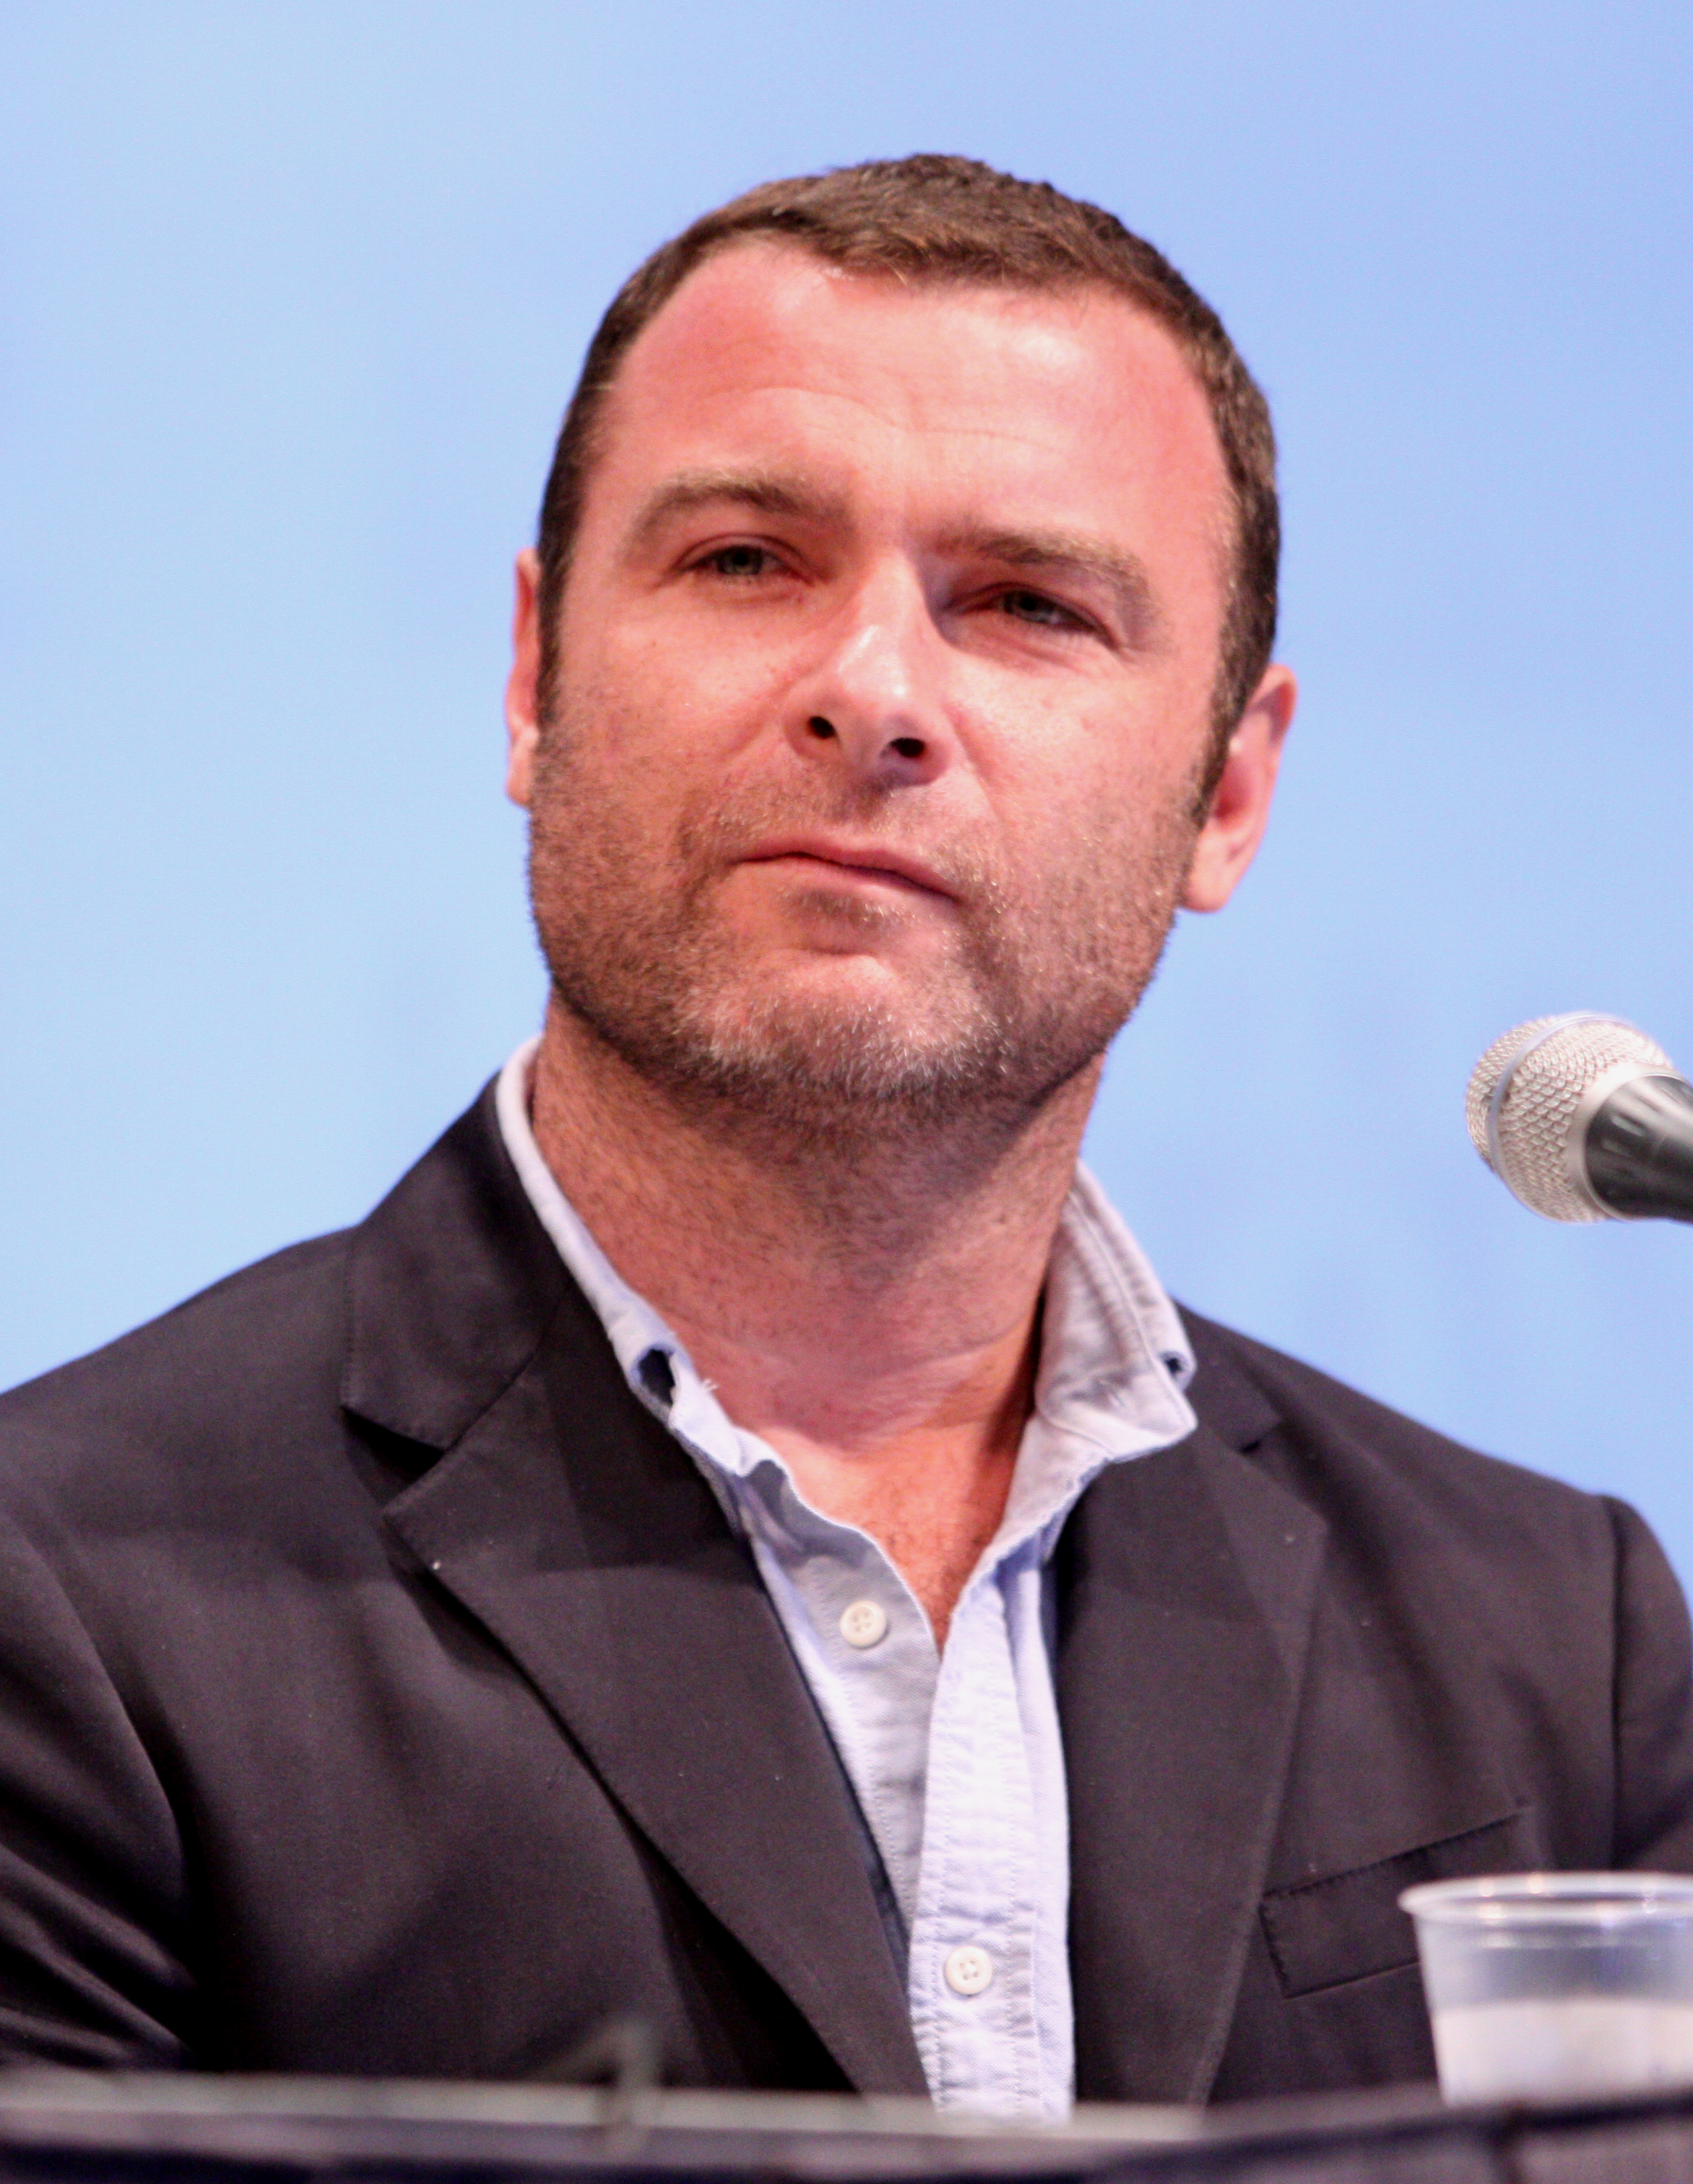 The 51-year old son of father Tell Schreiber and mother Heather Schreiber Liev Schreiber in 2018 photo. Liev Schreiber earned a  million dollar salary - leaving the net worth at 16 million in 2018